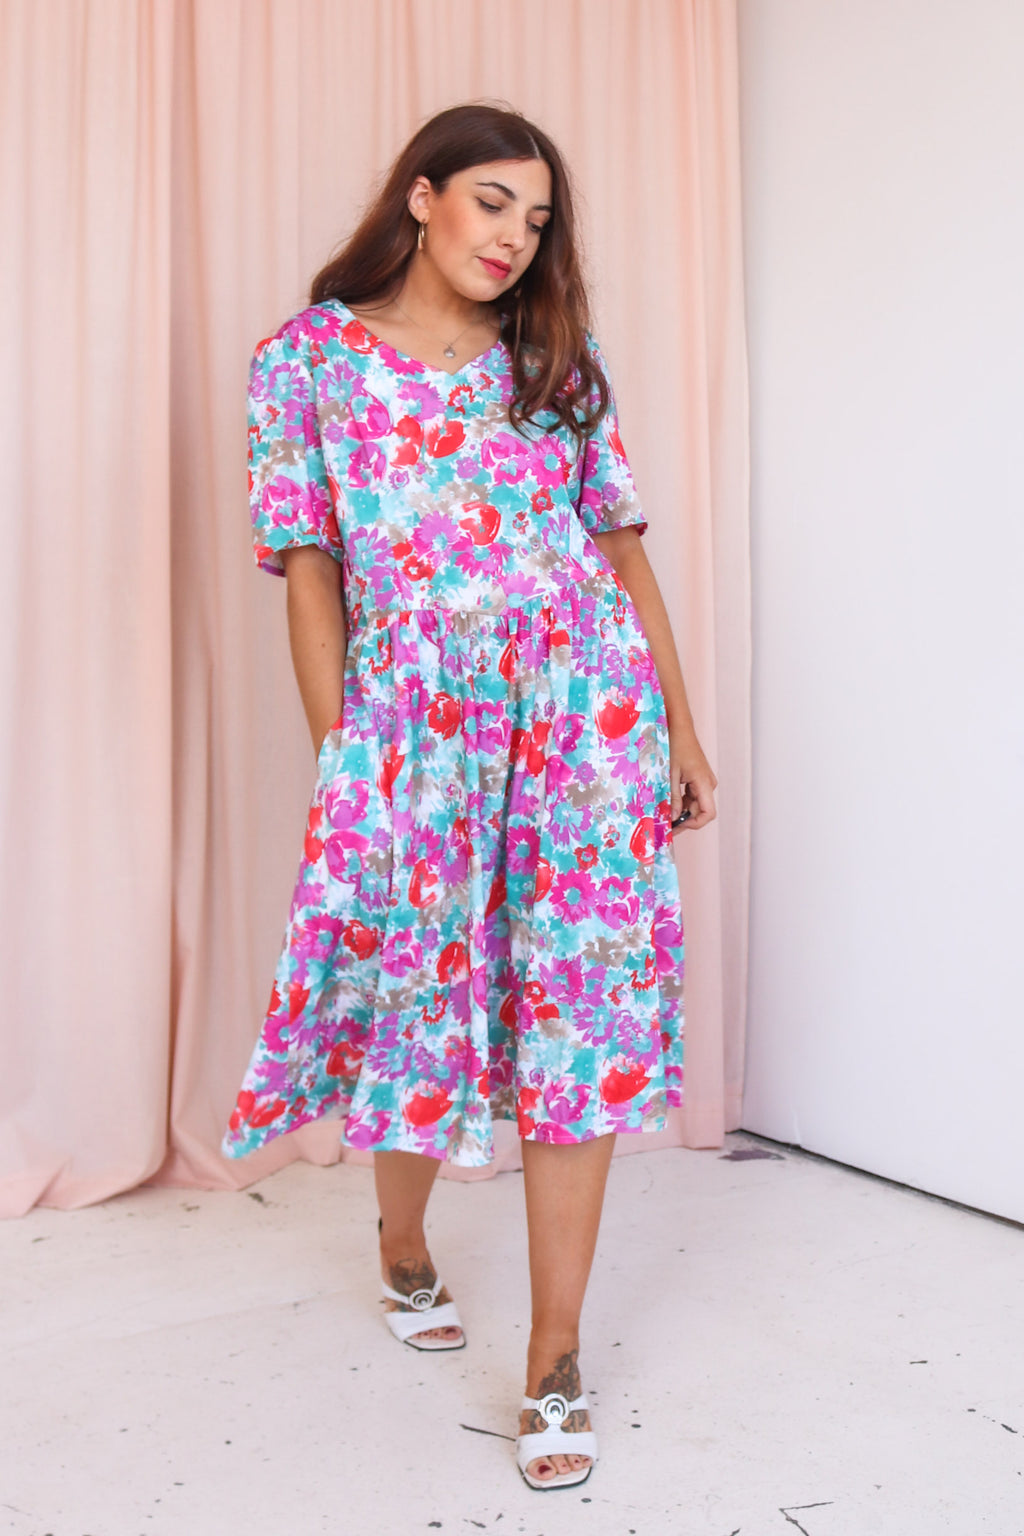 VintageMidi Dress in Pink Floral Print - Dirty Disco